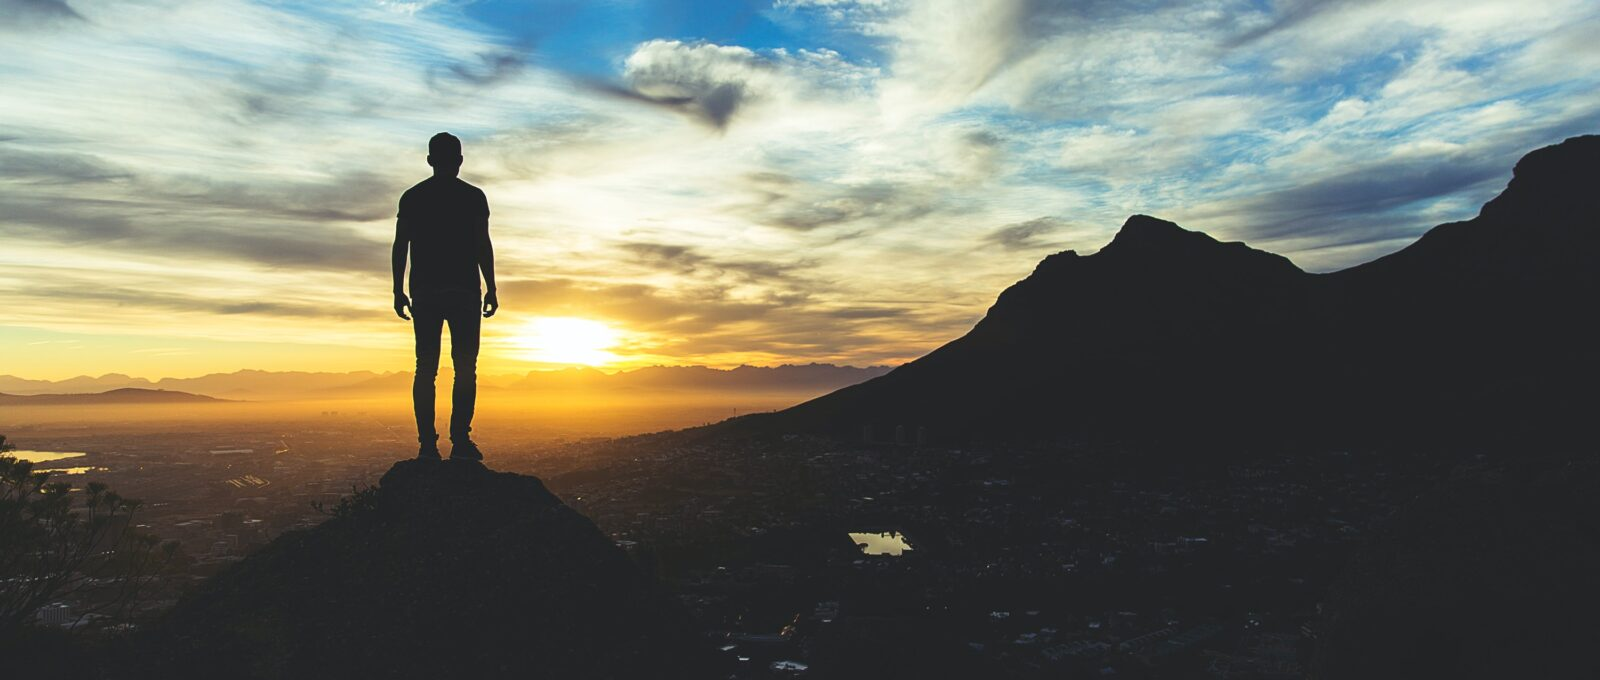 Silhouette of a man against a sunset sky